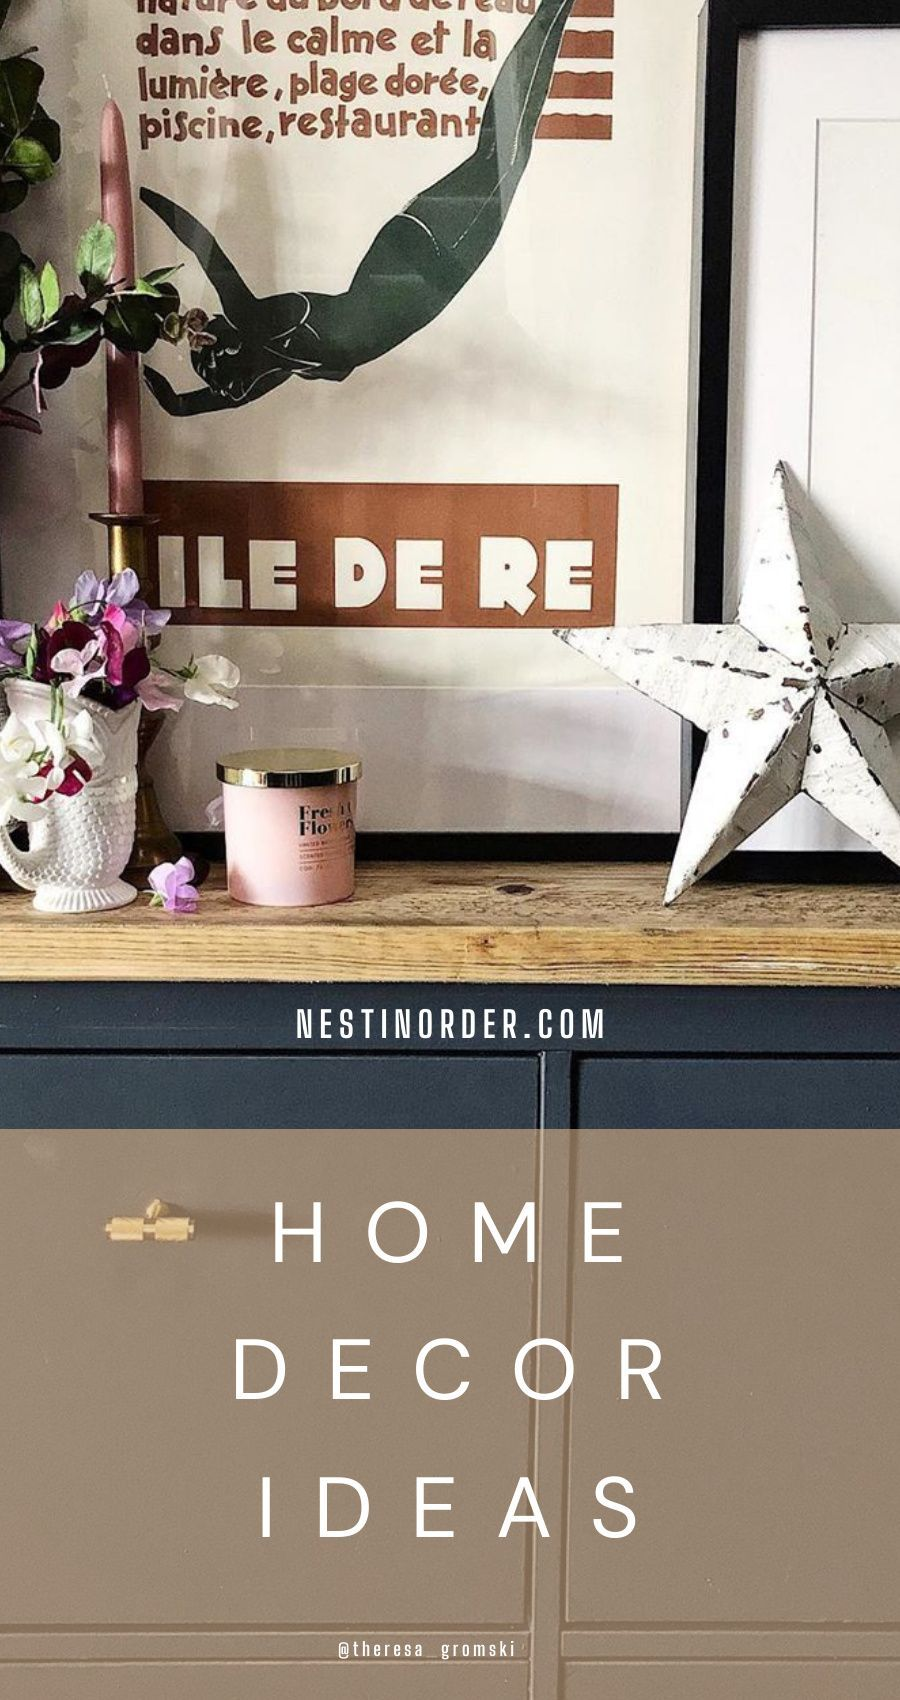 Make your home gorgeous with our home decoration ideas. #homedecor #housedecor #nestinorder